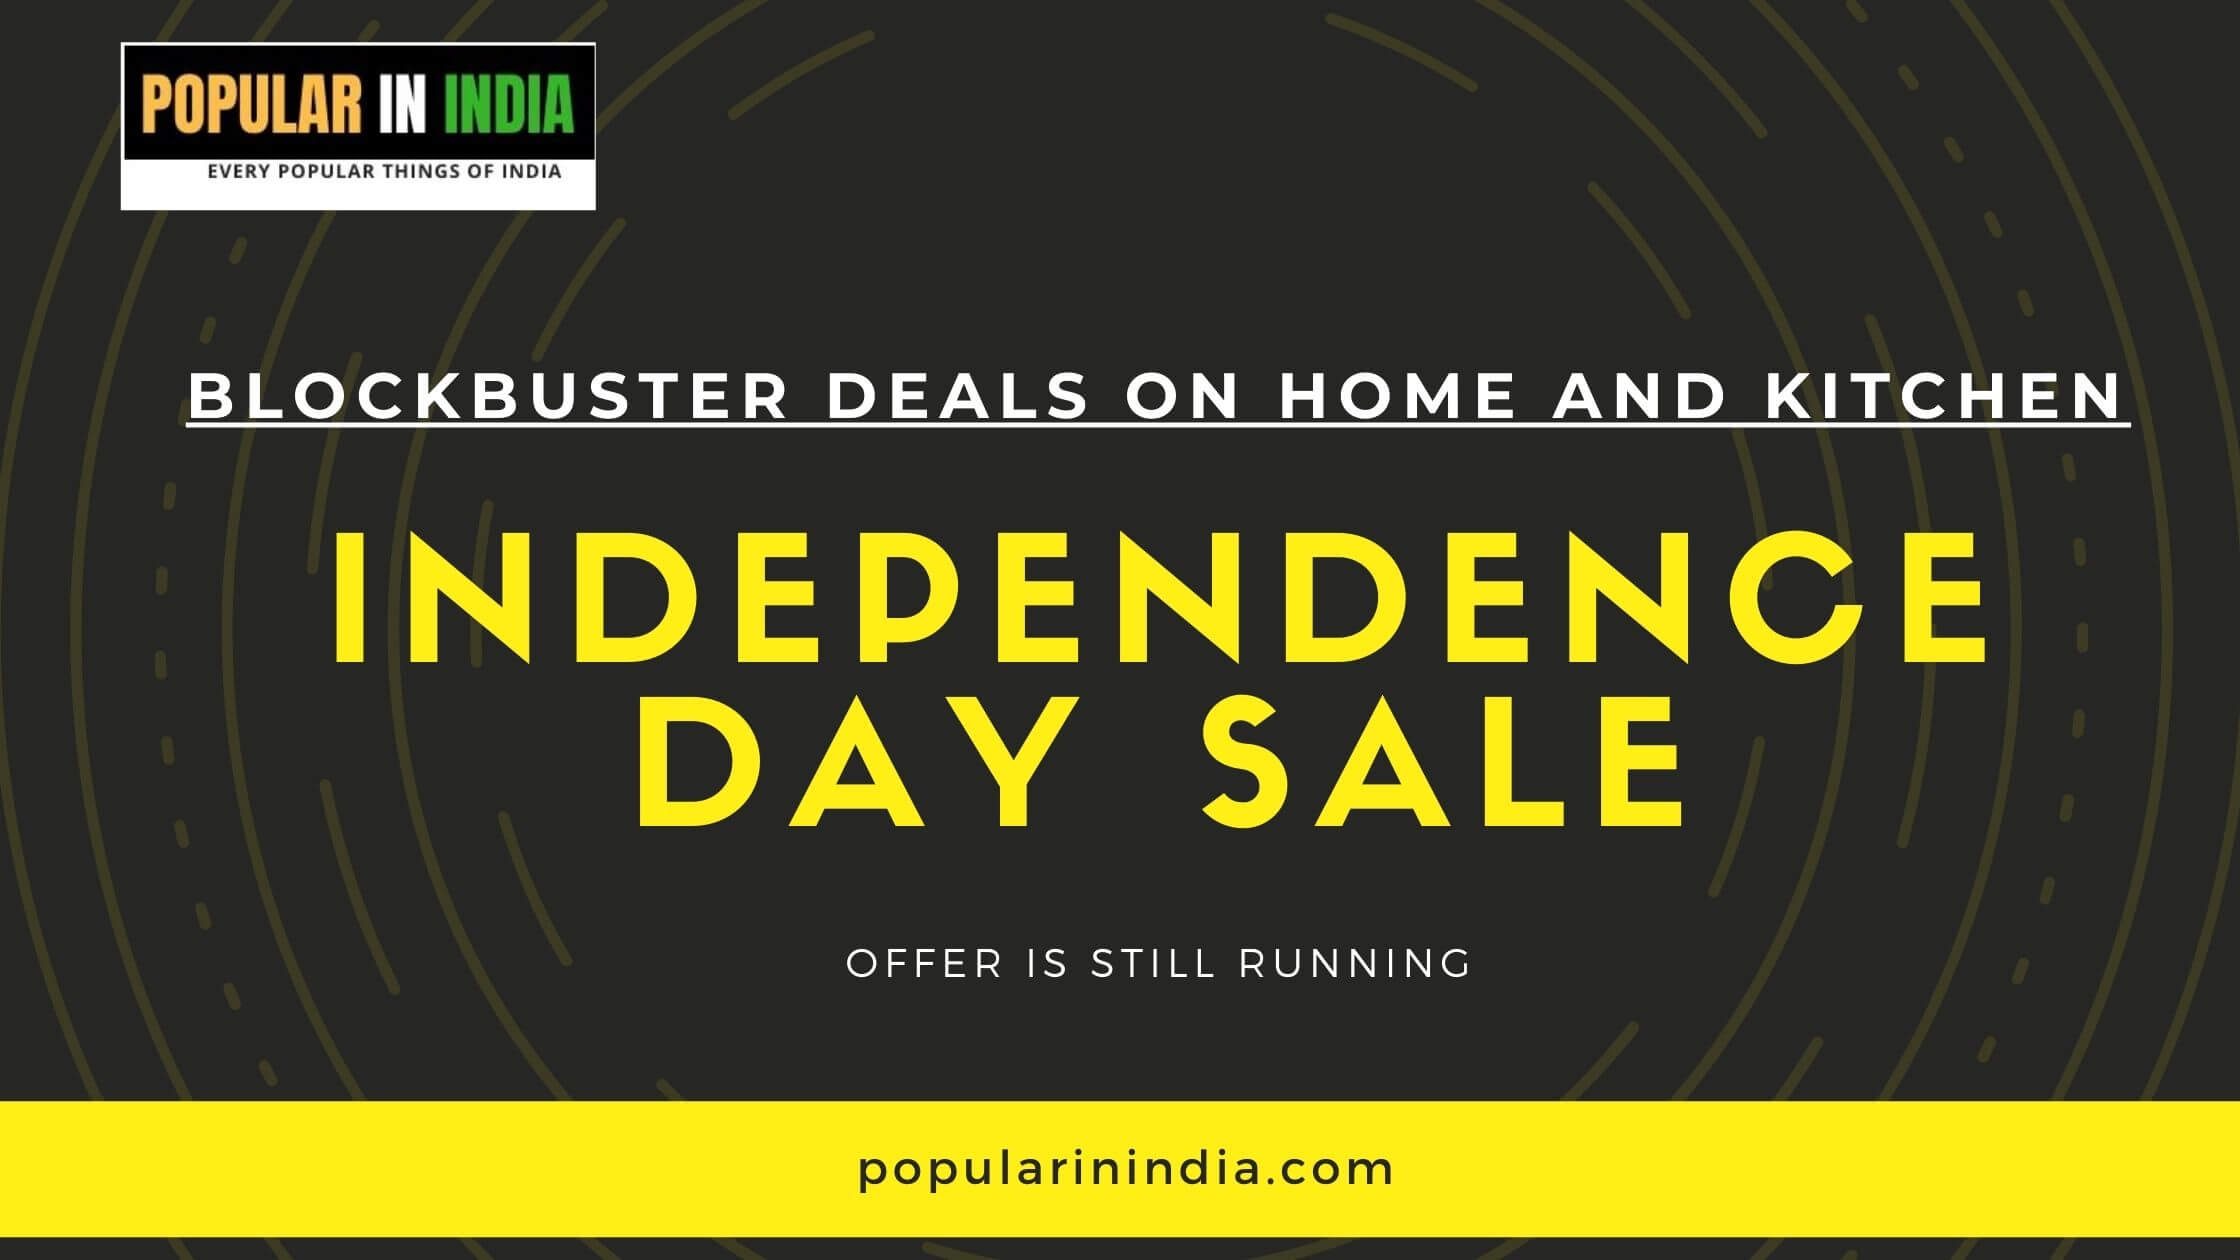 Blockbuster deals and Offers on Home and Kitchen on amazon and Flipkart